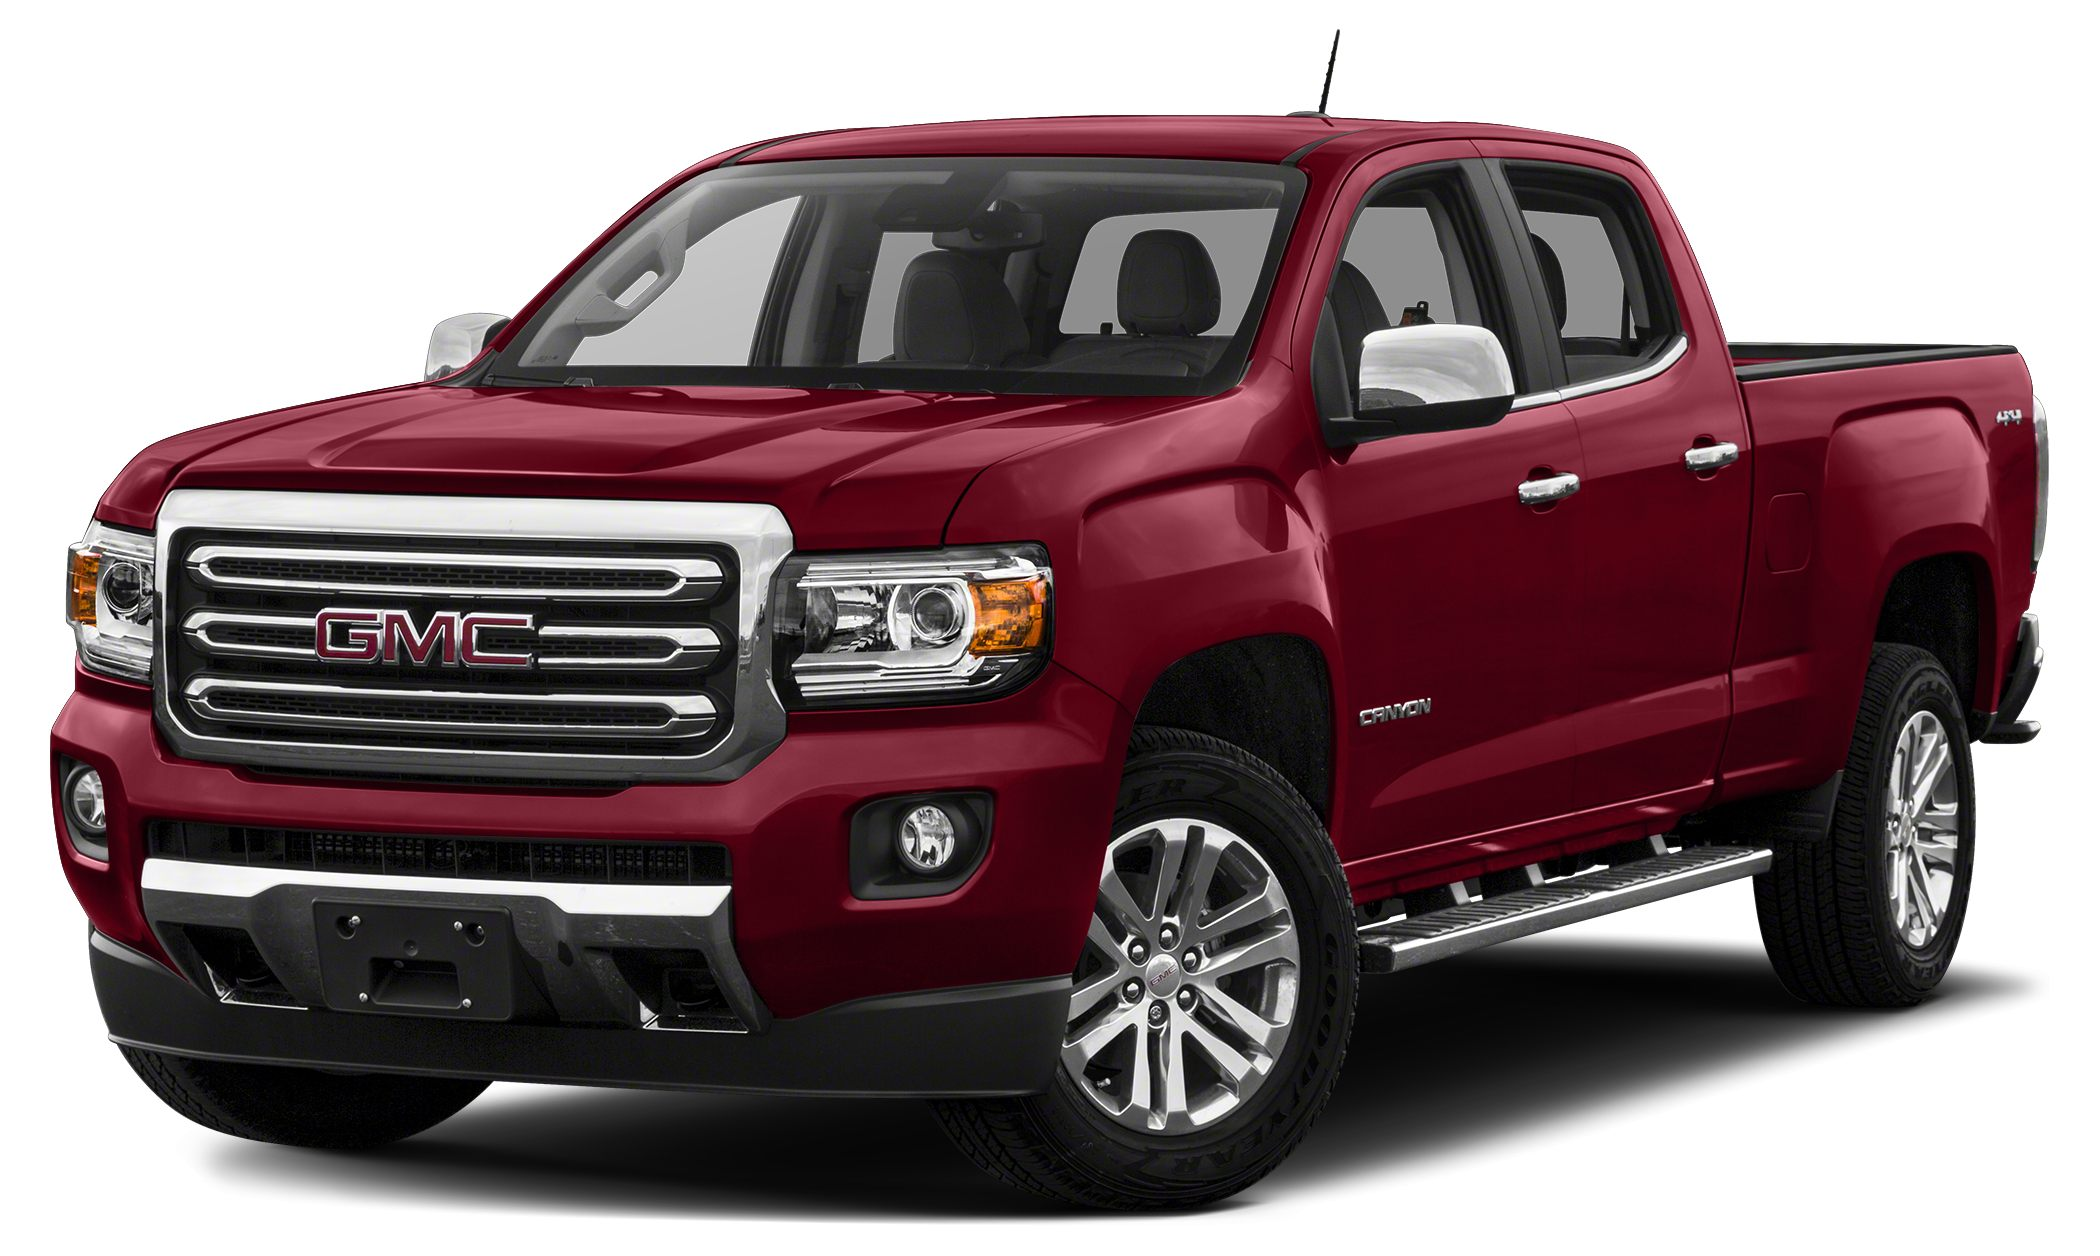 2017 GMC Canyon SLT The GMC Canyon will redefine the small truck category with segment-leading fea